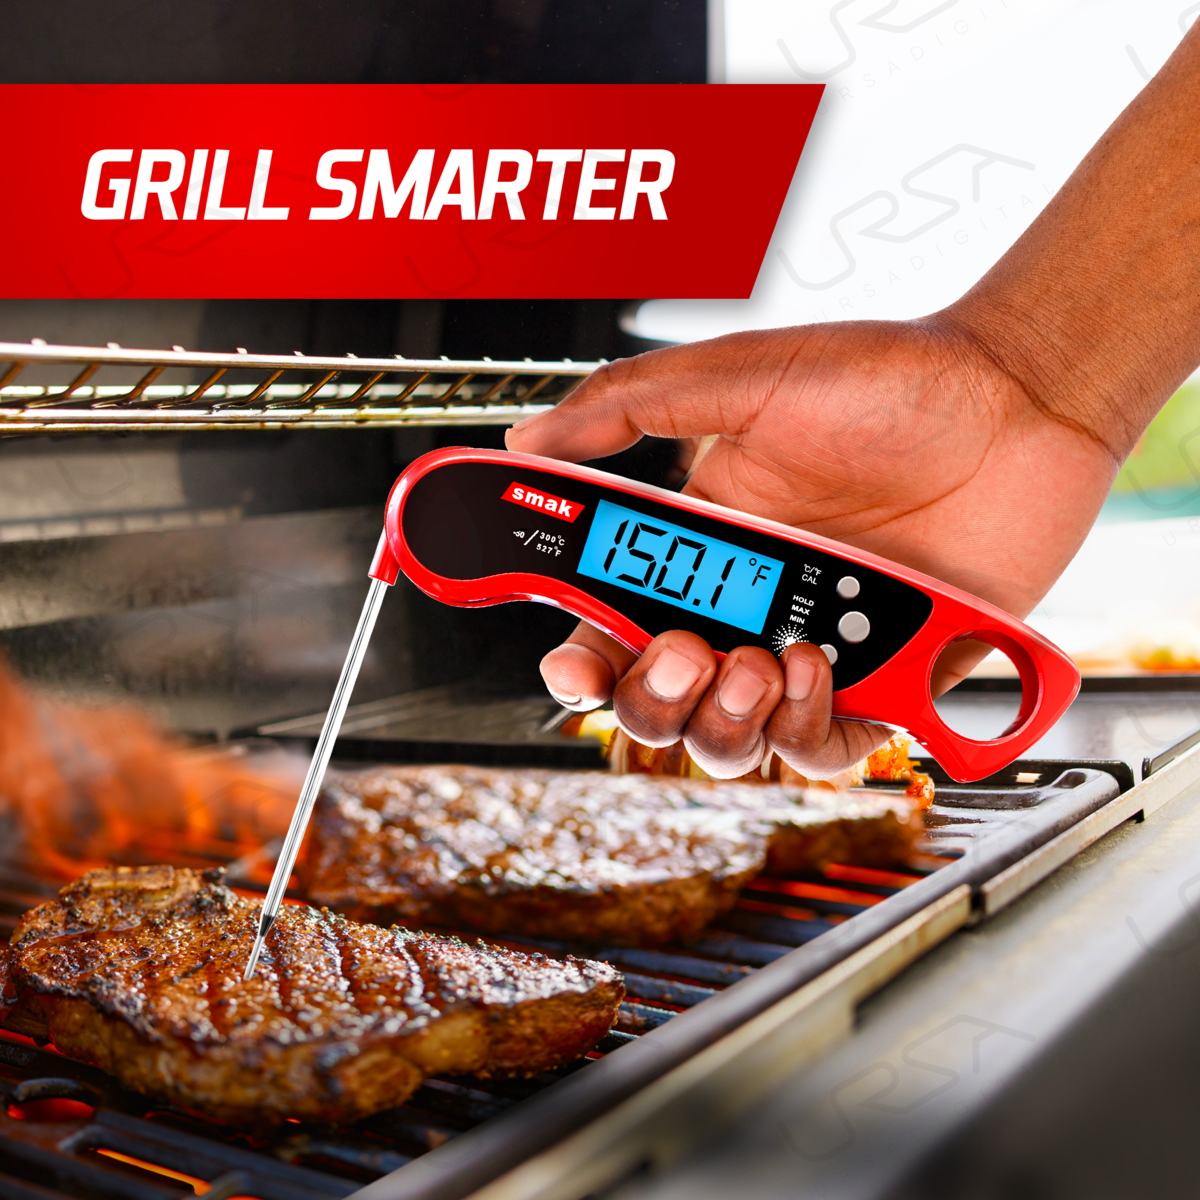 Digital Instant Read Meat Thermometer - Smak Waterproof Kitchen Food Cooking Thermometer with Backlight LCD - Best Super Fast Electric Meat Thermometer Probe for BBQ Grilling Smoker Baking Turkey (Chilli)